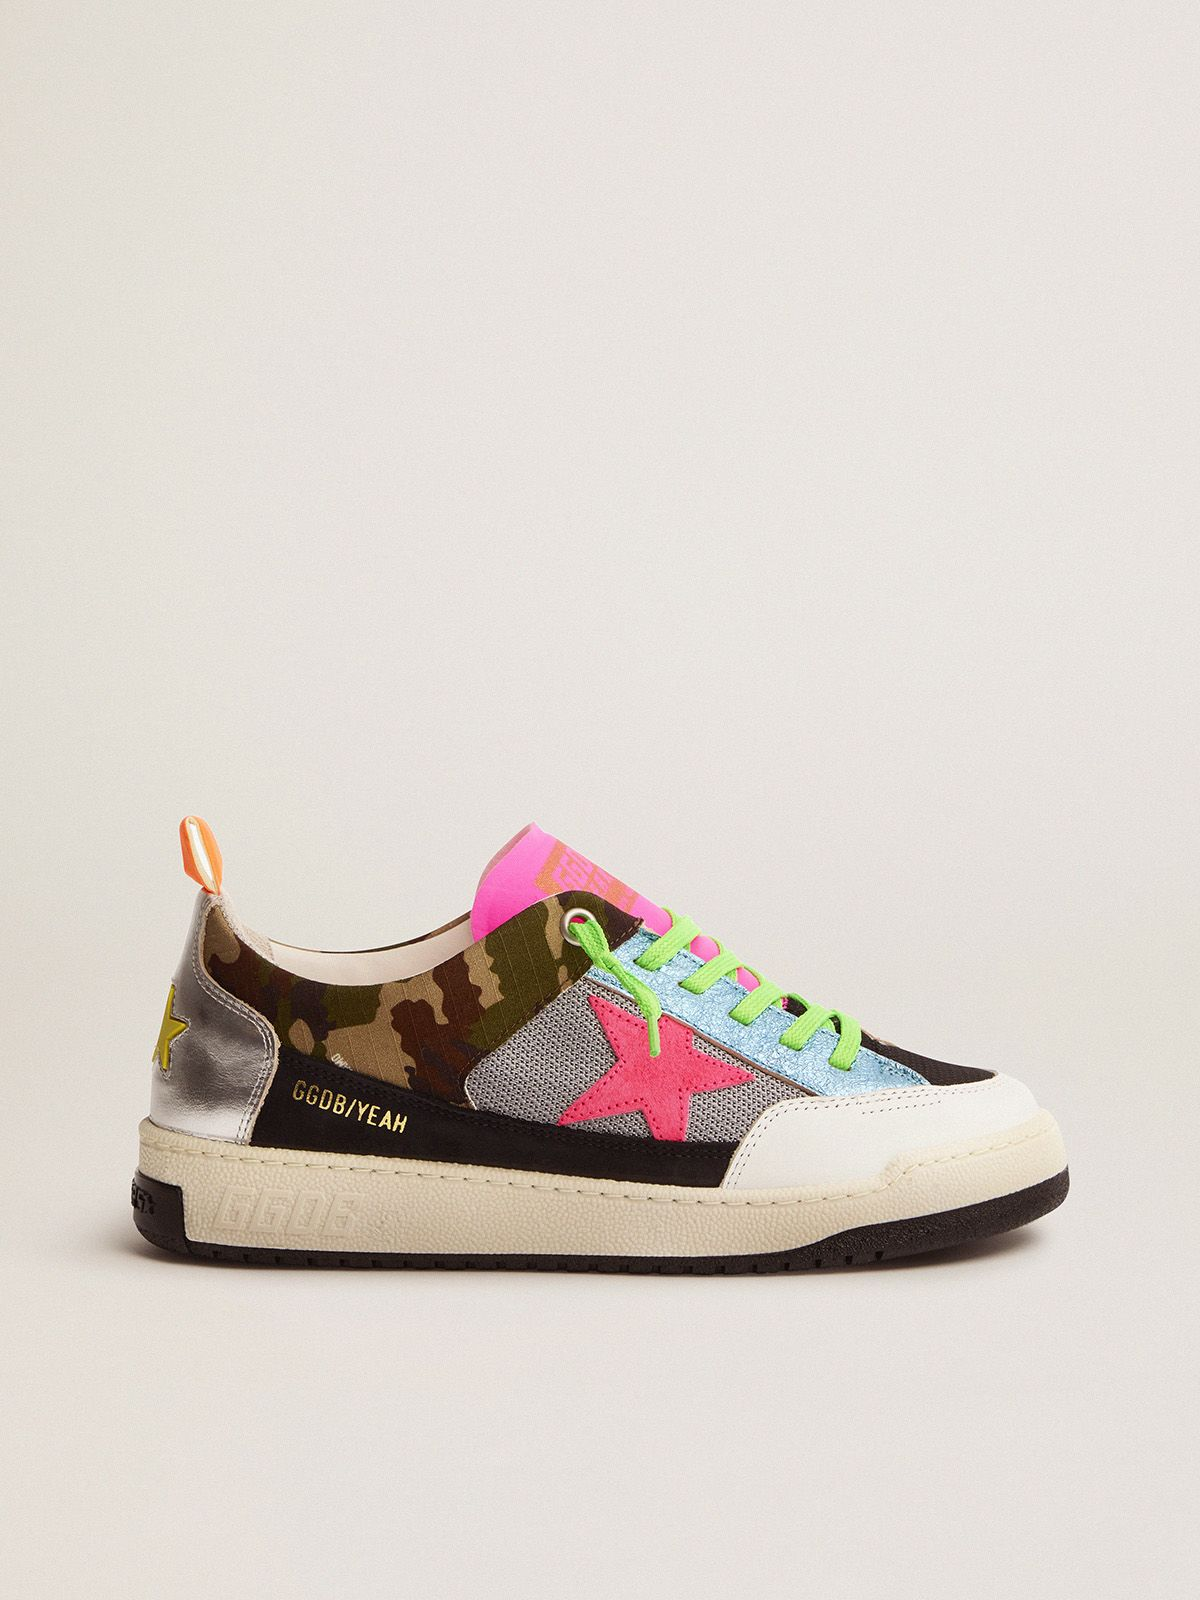 Women's camouflage Yeah sneakers with fuchsia star